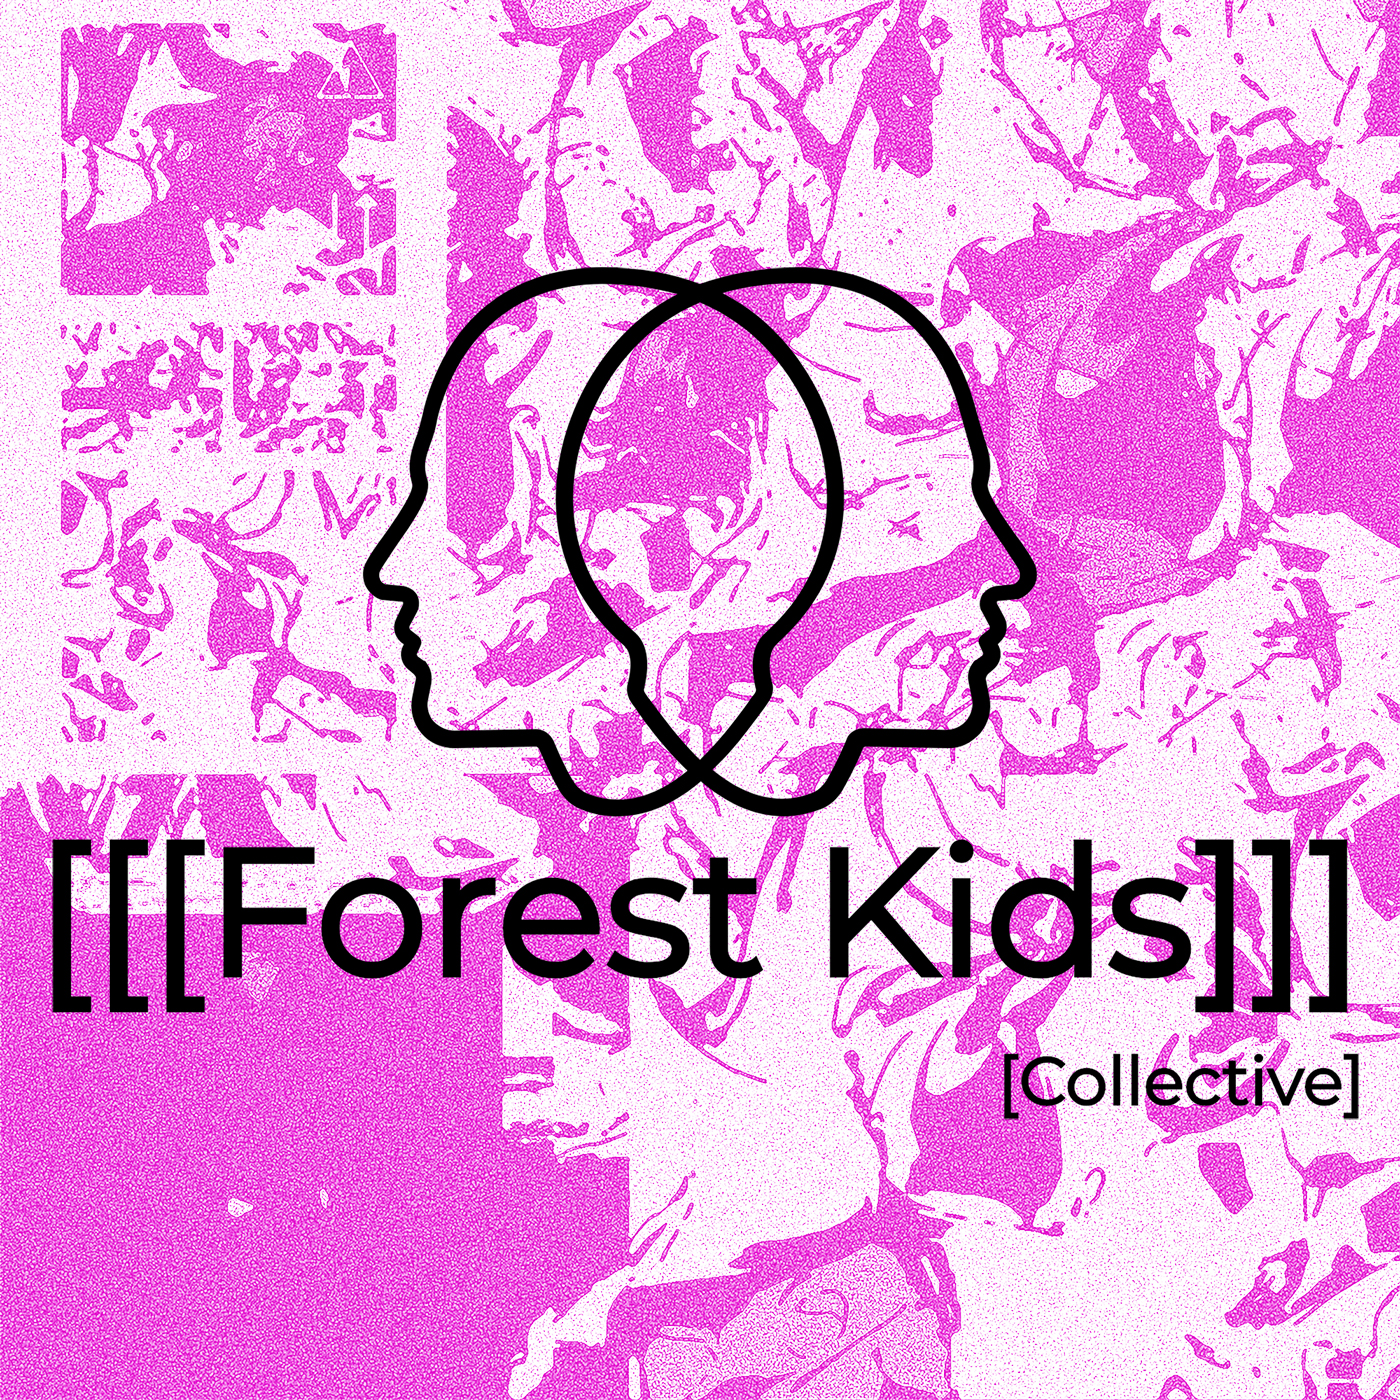 forest kids playlist downtempo.jpg